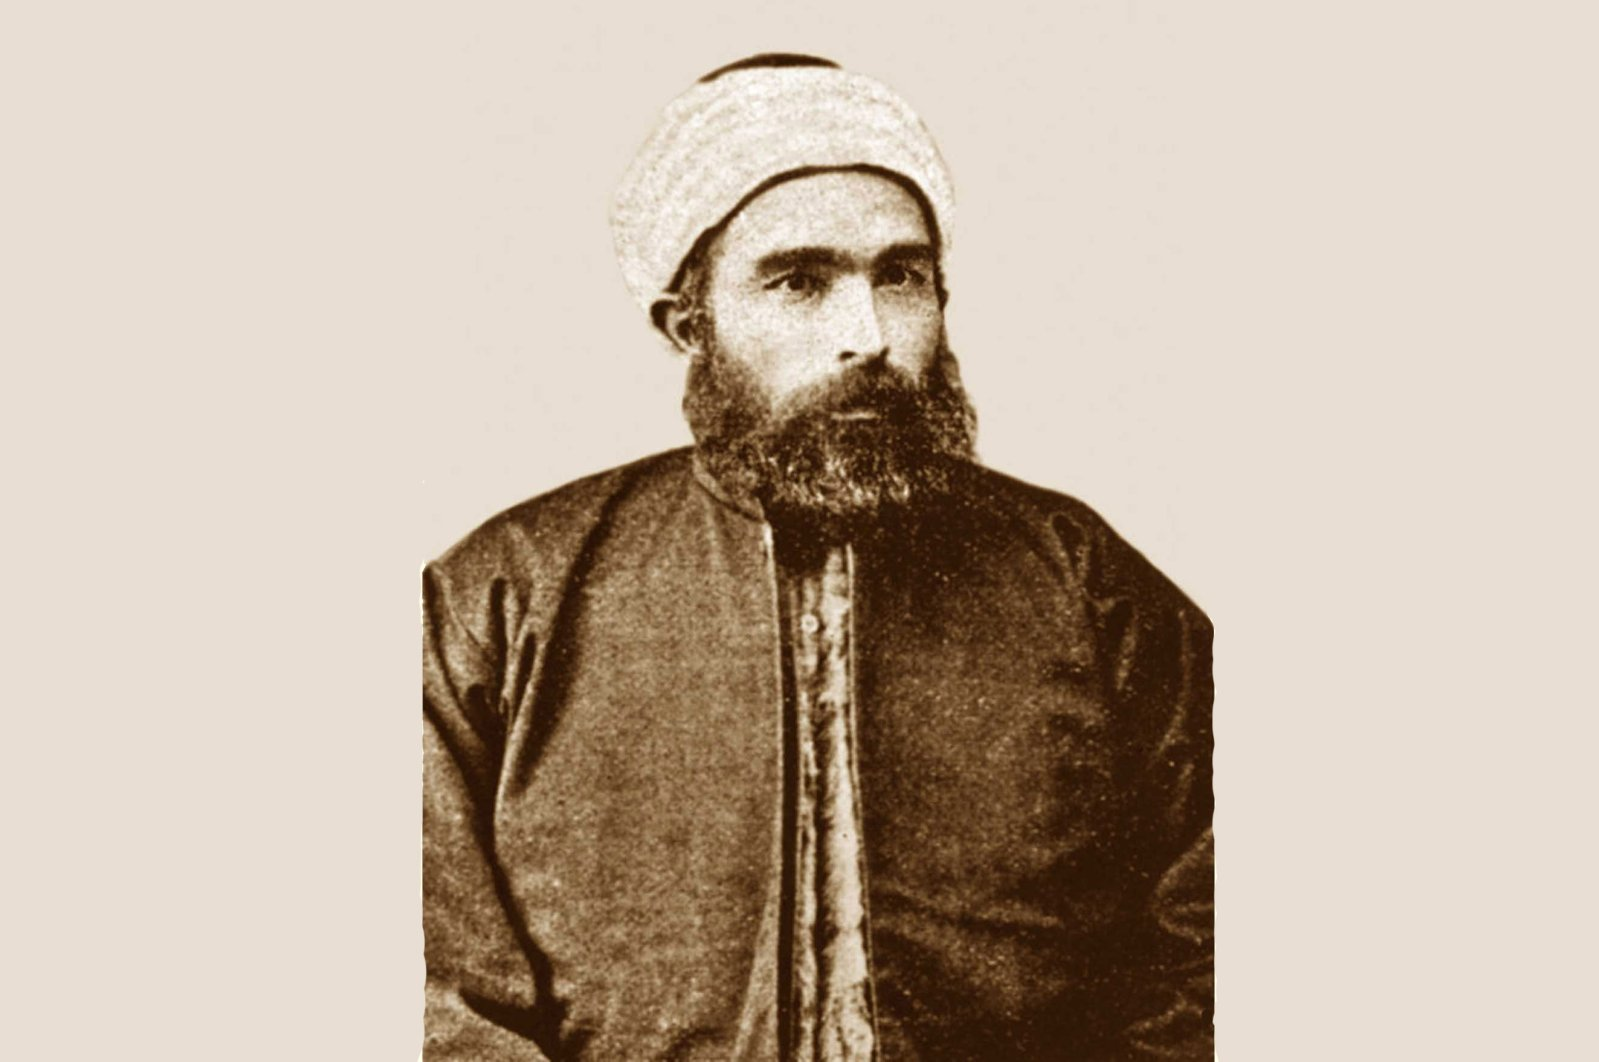 Following the 1908 Revolution, Musa Kazım Efendi was appointed as the Sheikh al-Islam for the first time.